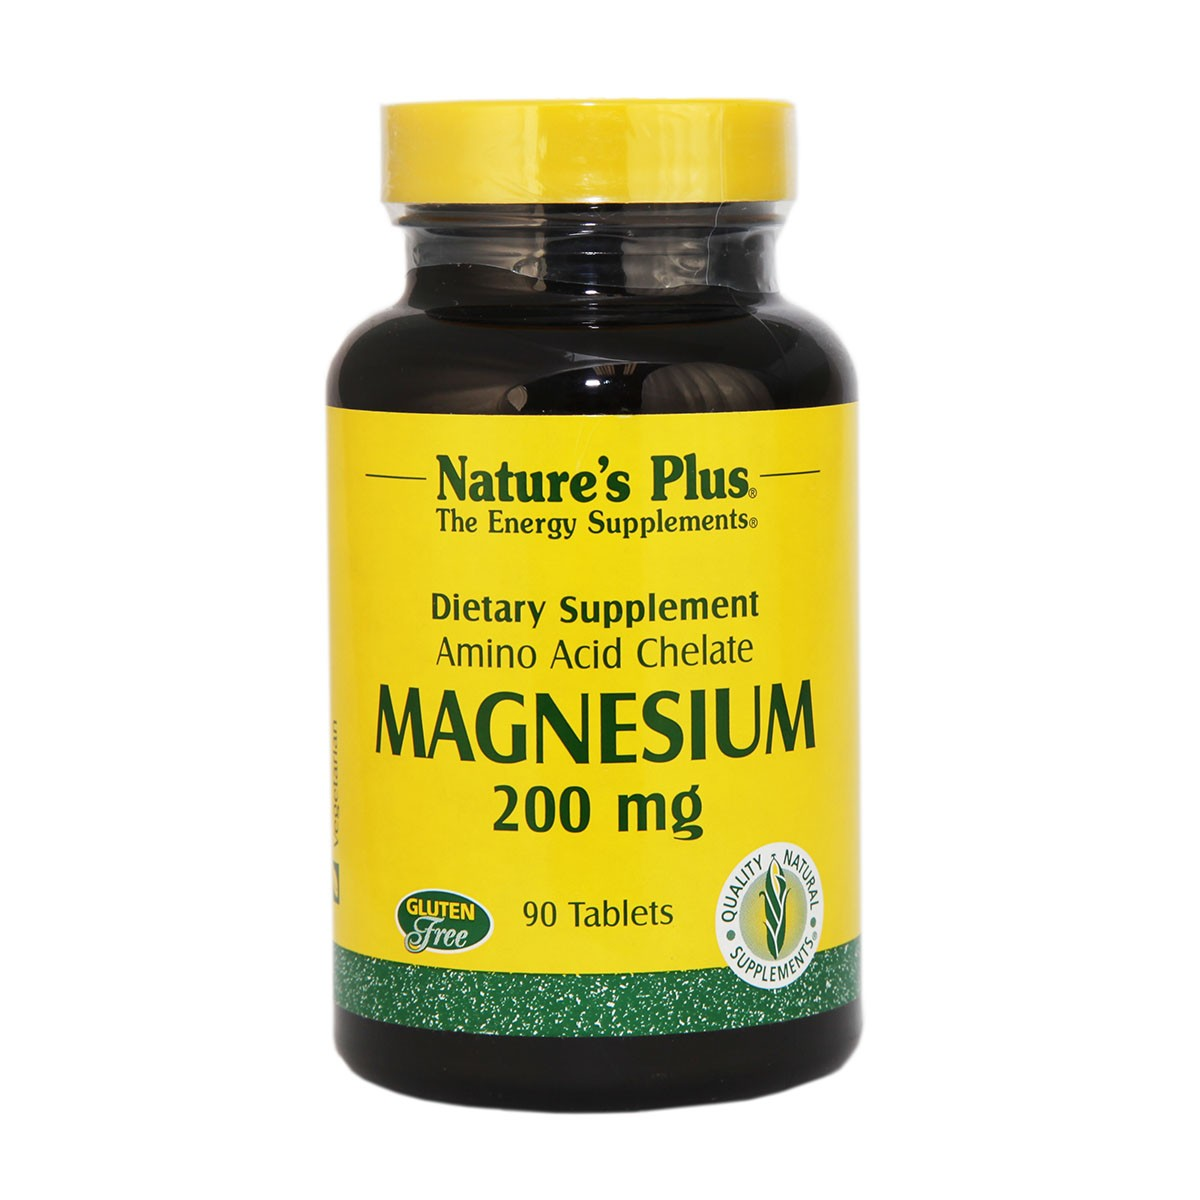 Natures Plus Magnesium 200 mg Tablets